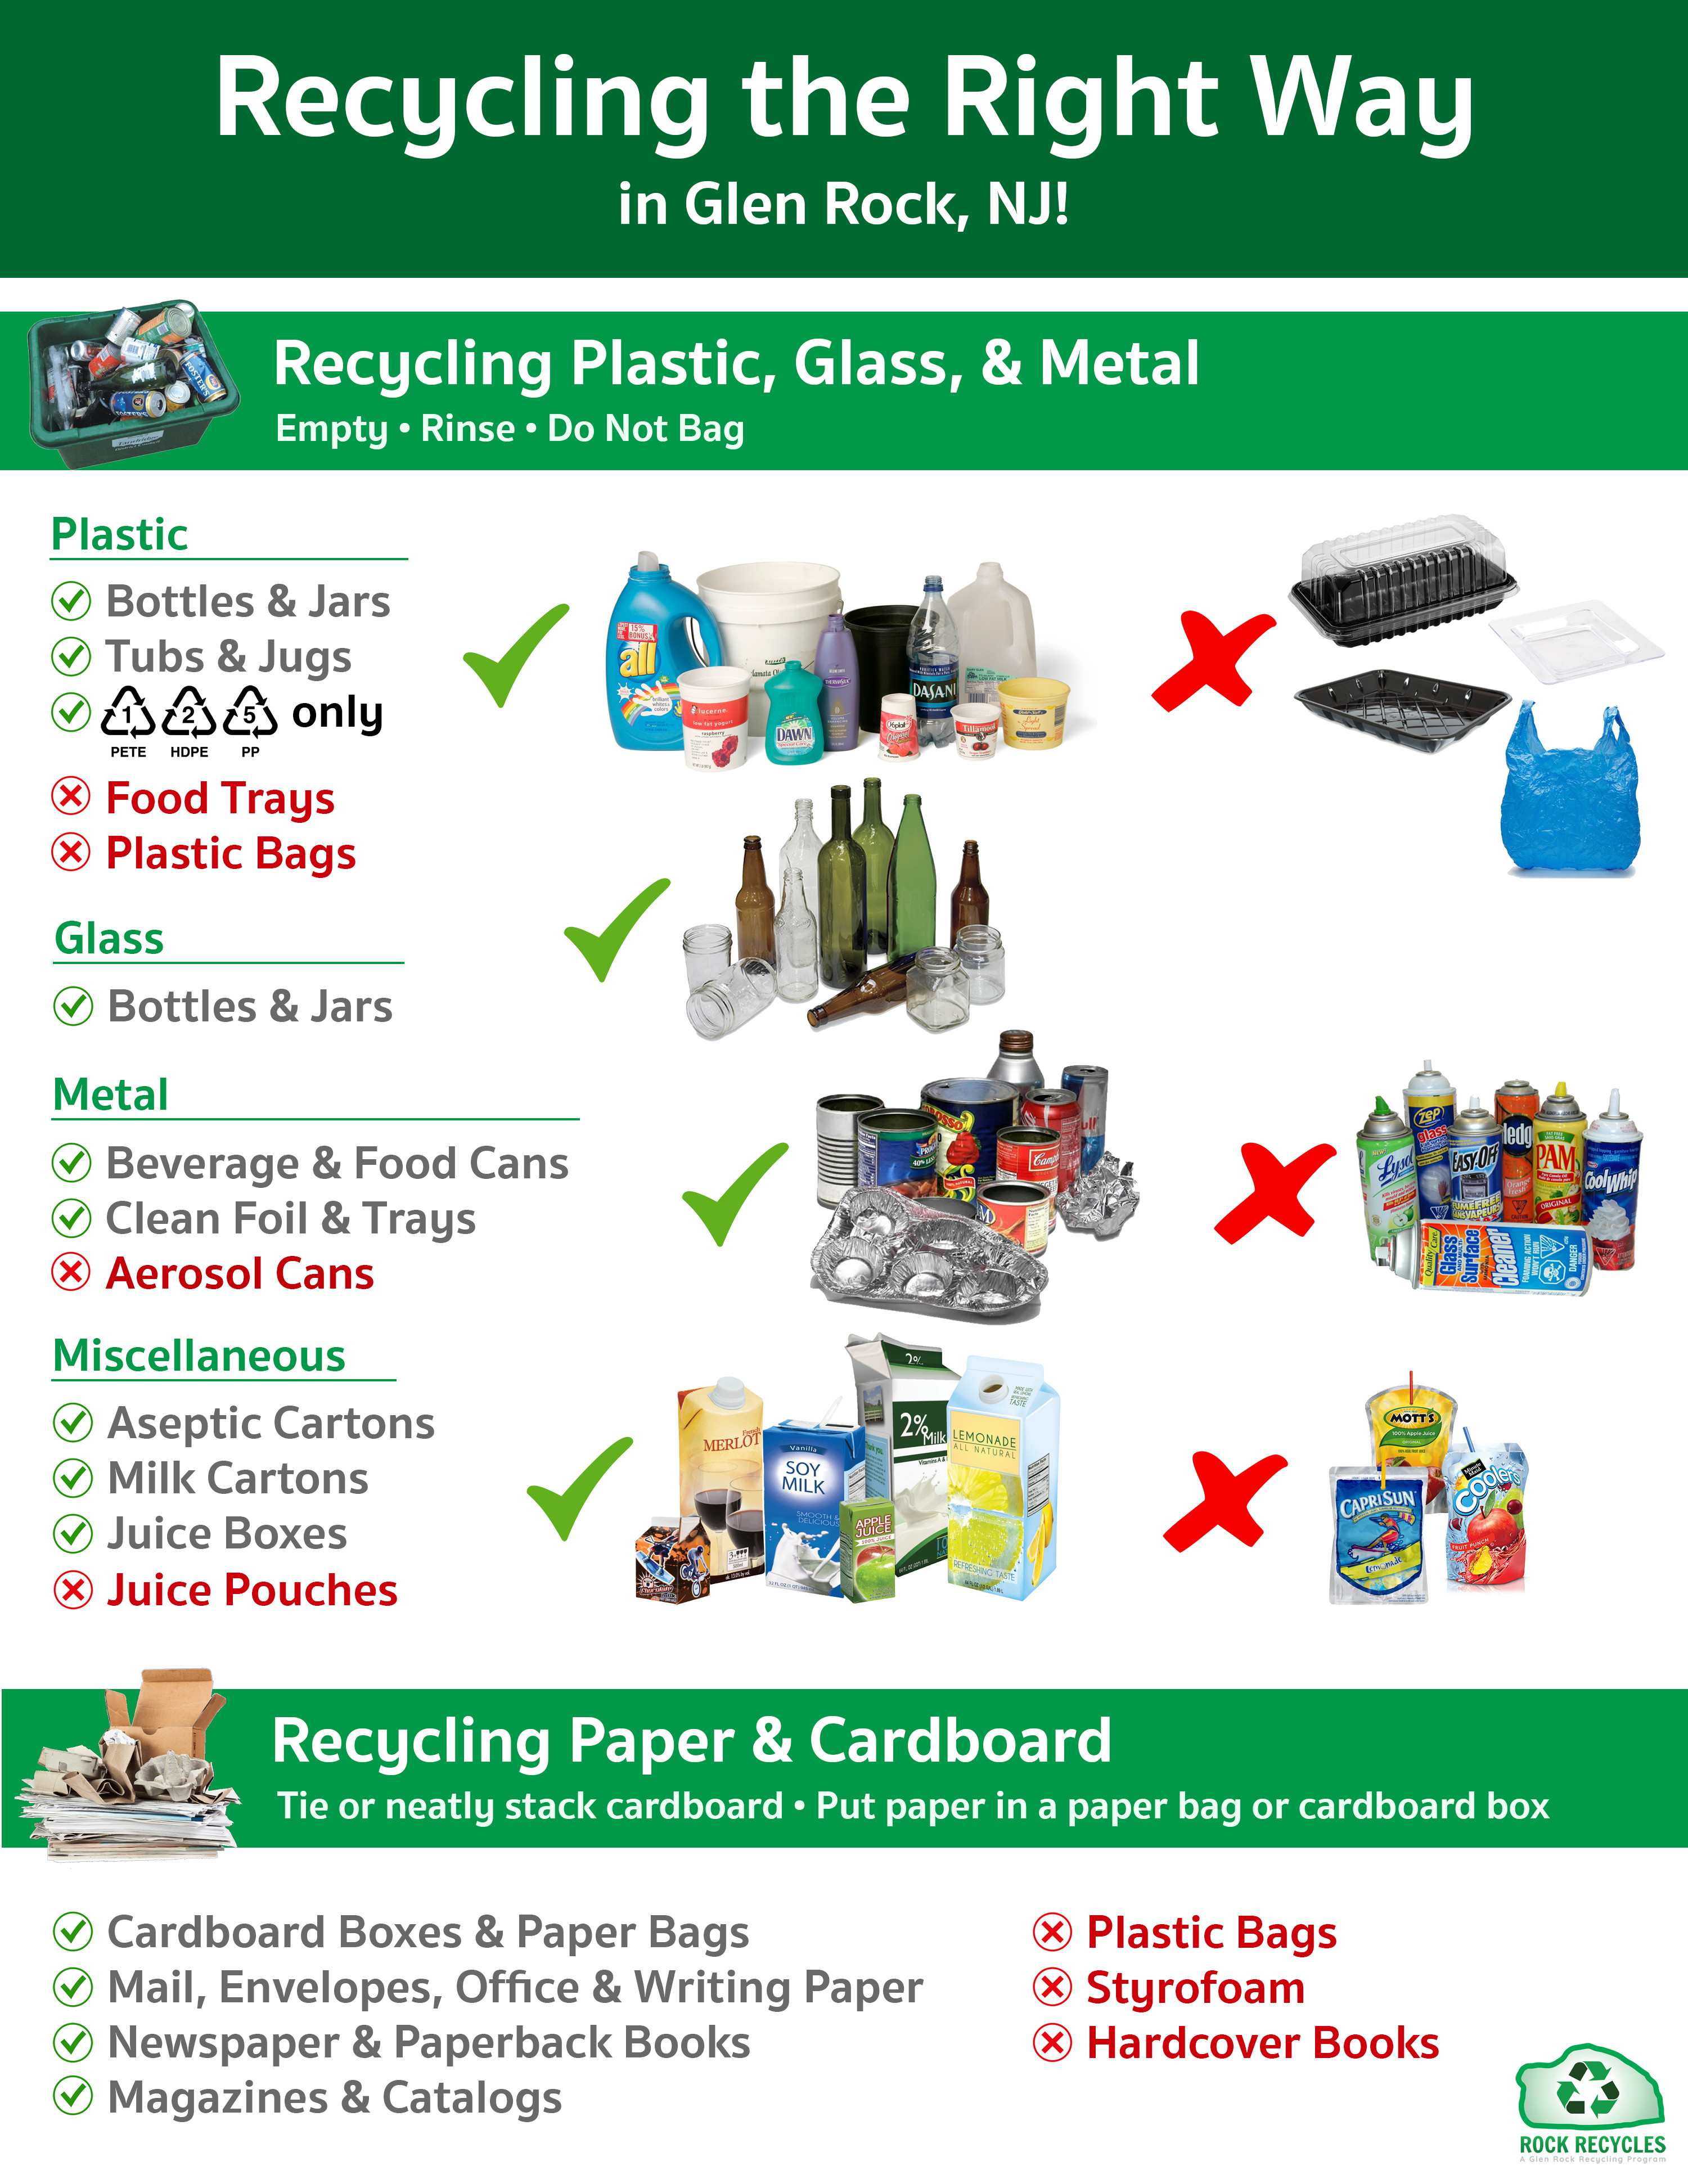 recycling borough of glen rock new jersey